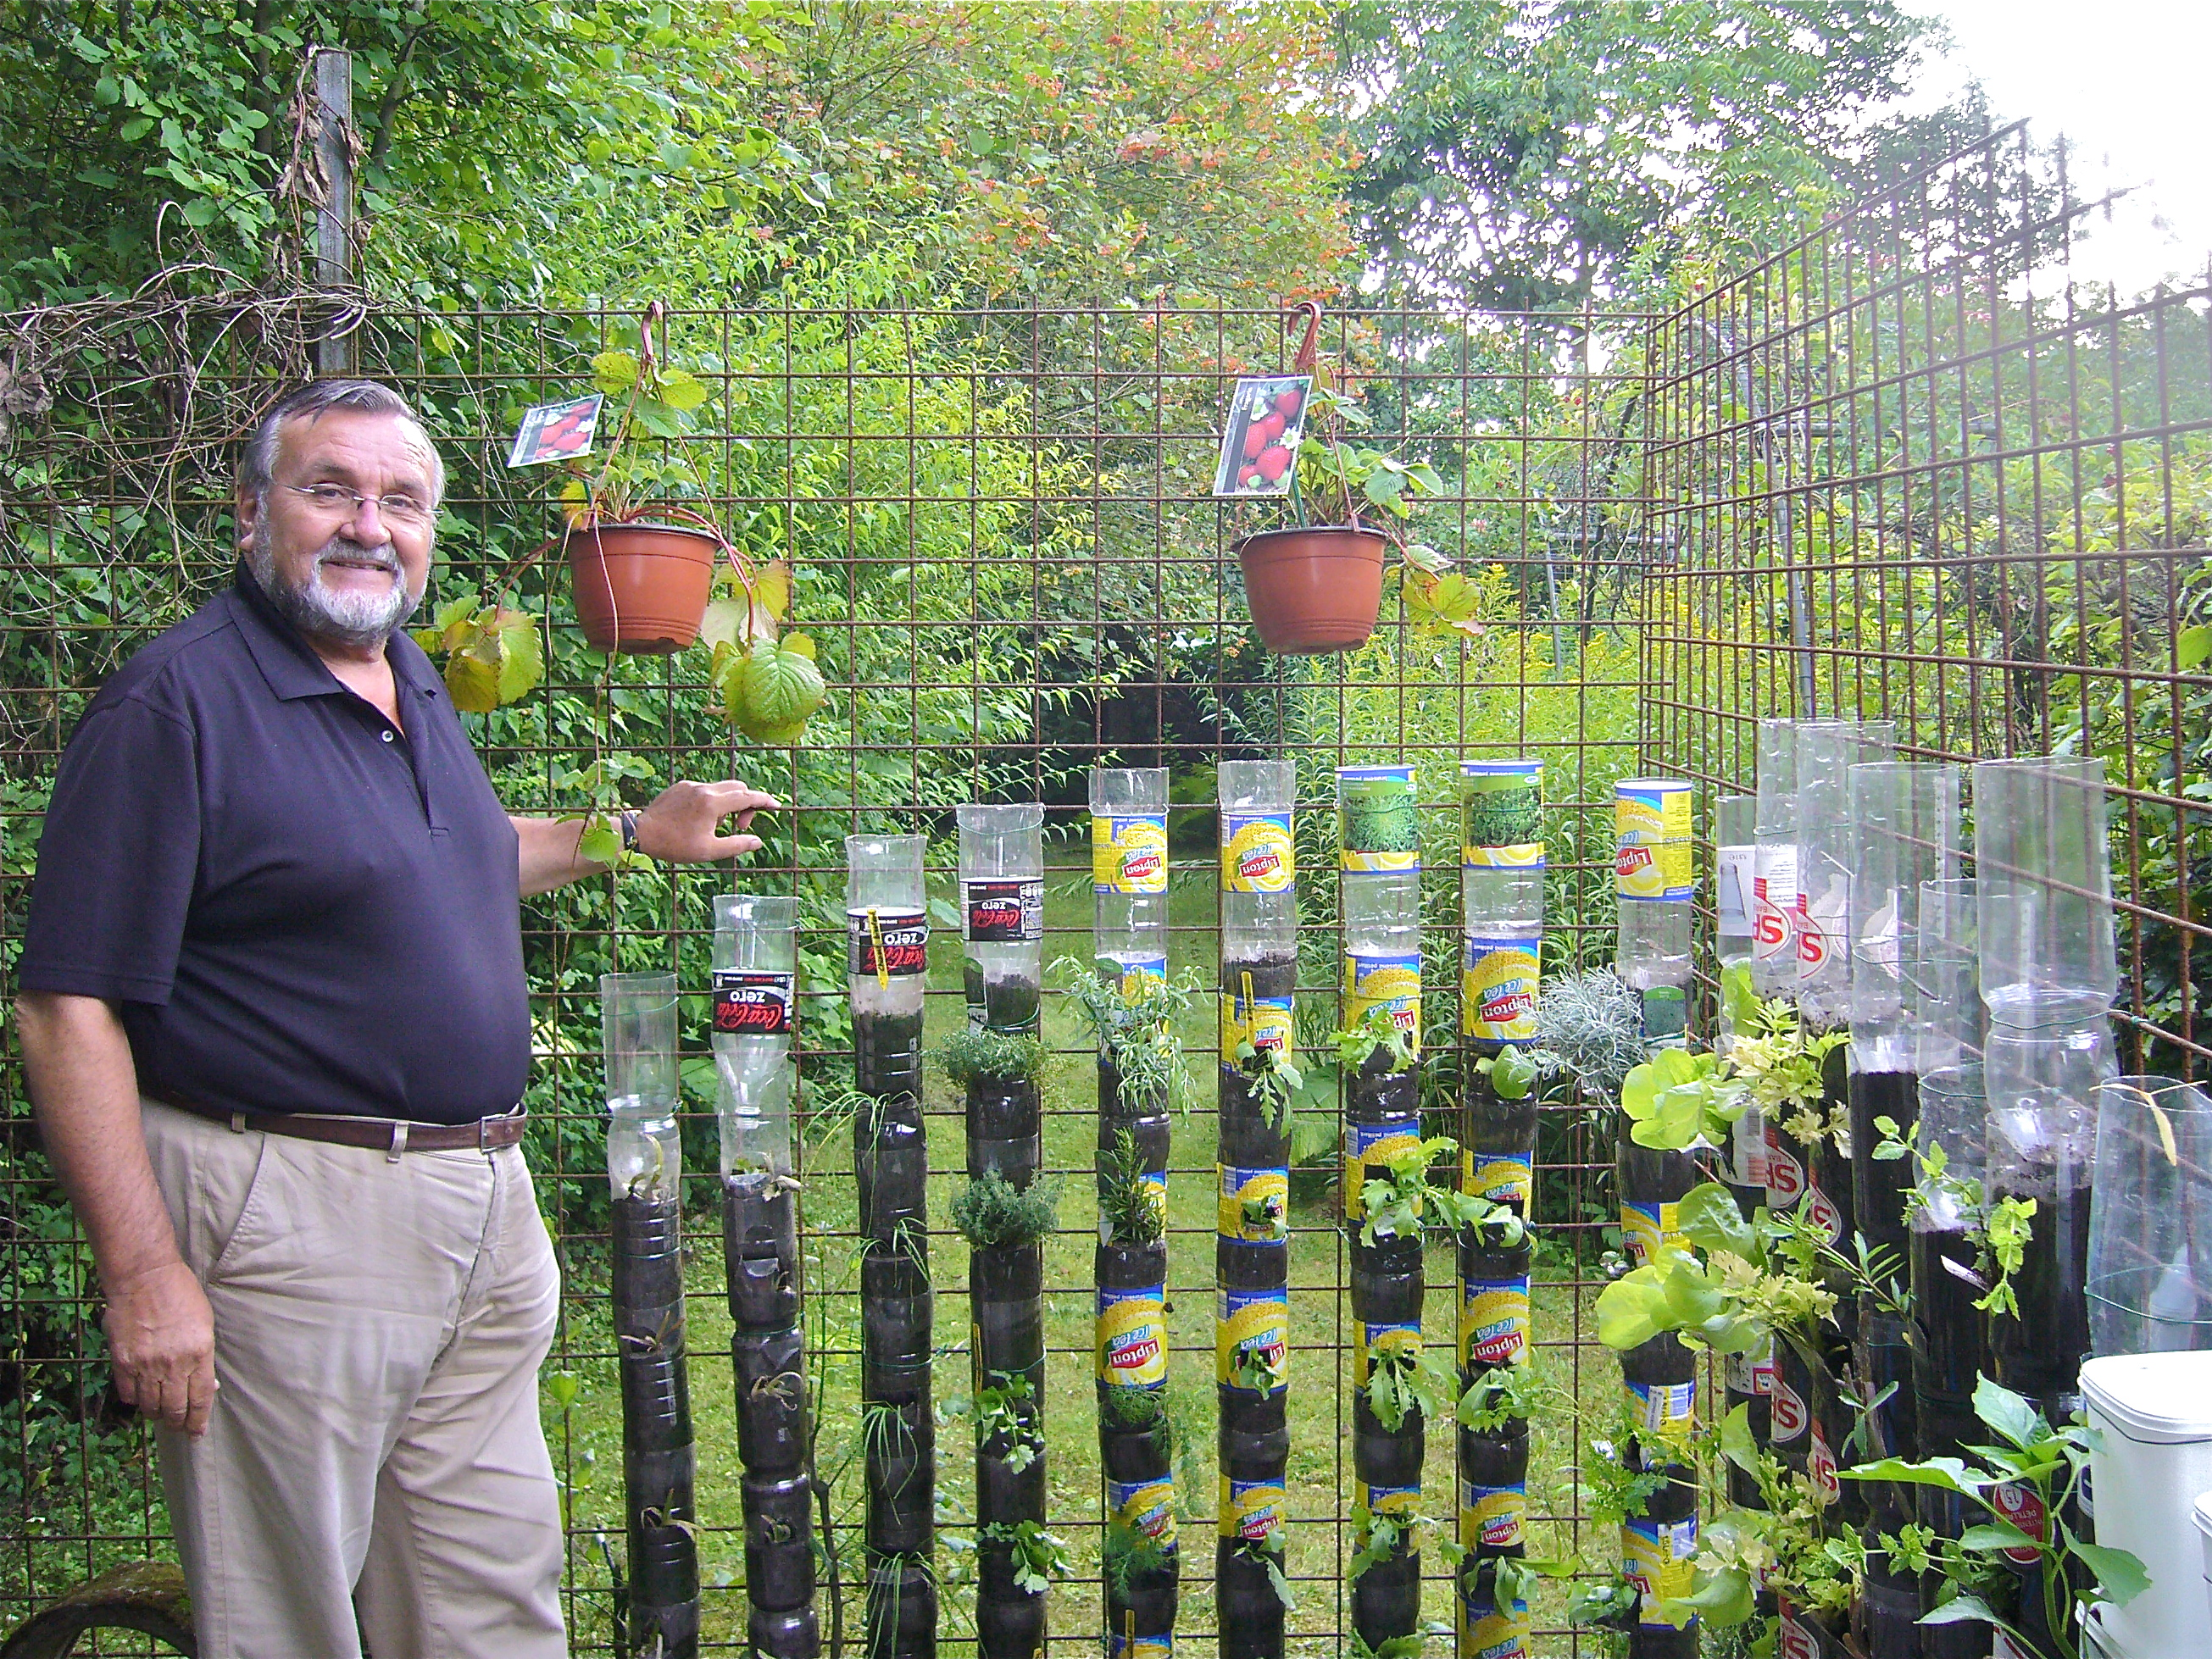 ALLEVIATING HUNGER AND MALNUTRITION WITH BOTTLE TOWER GARDENS